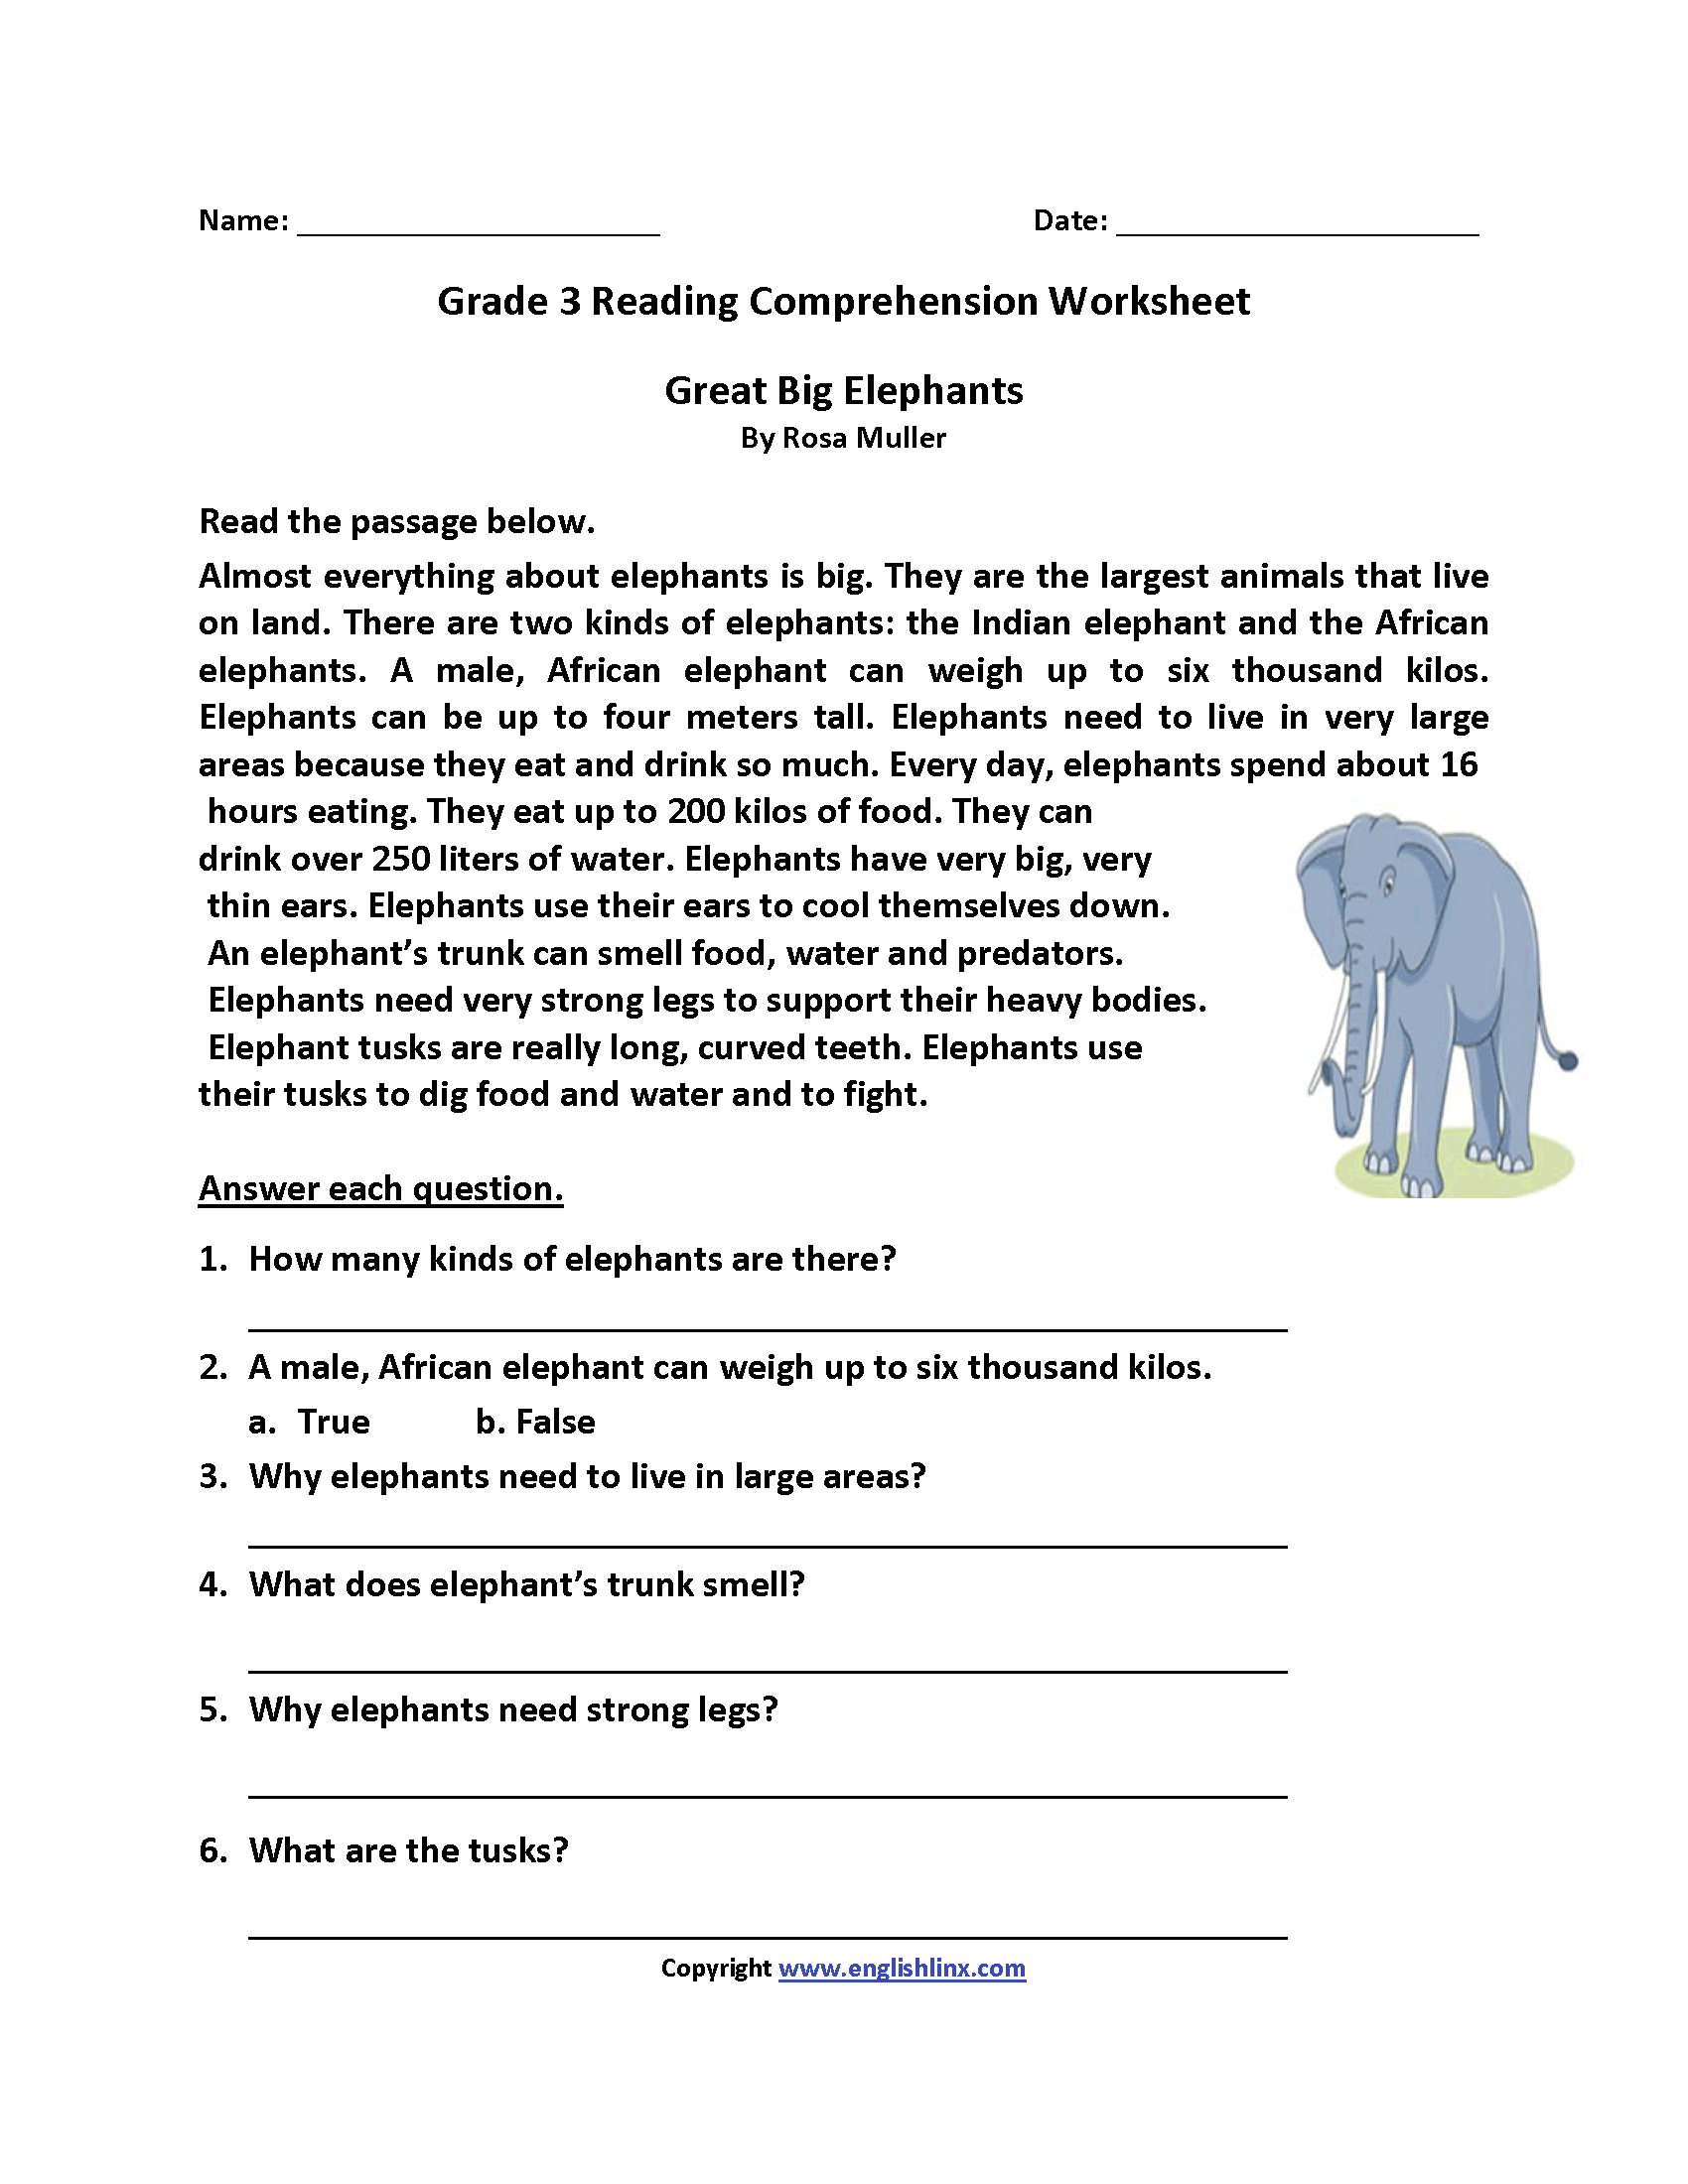 Great Big Elephants Third Grade Reading Worksheets | Board | Reading - Third Grade Reading Worksheets Free Printable